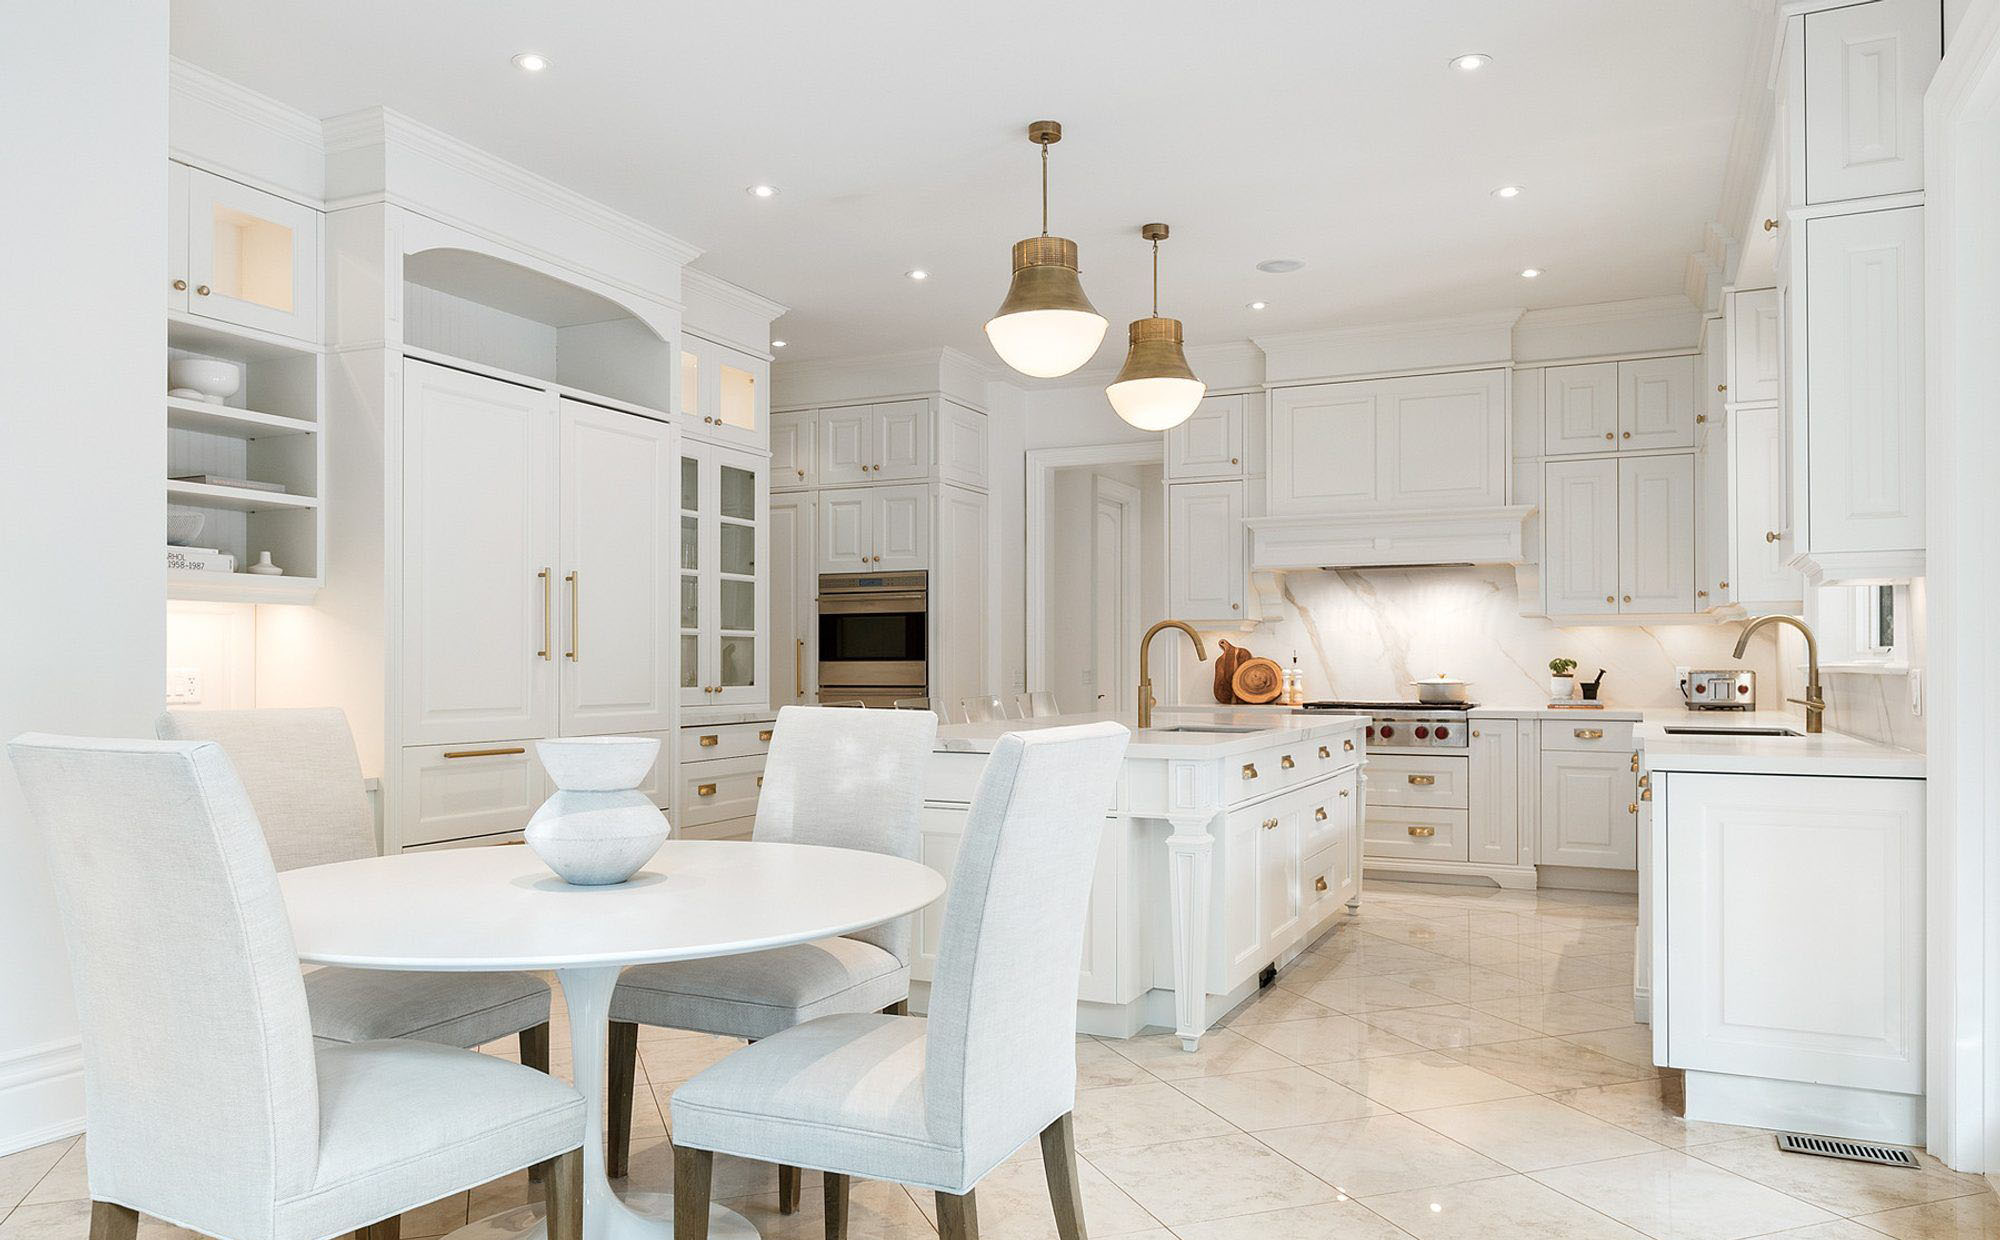 Beautiful luxury kitchen featuring white cabinets and matching island. Gold hardware, faucets and lighting.